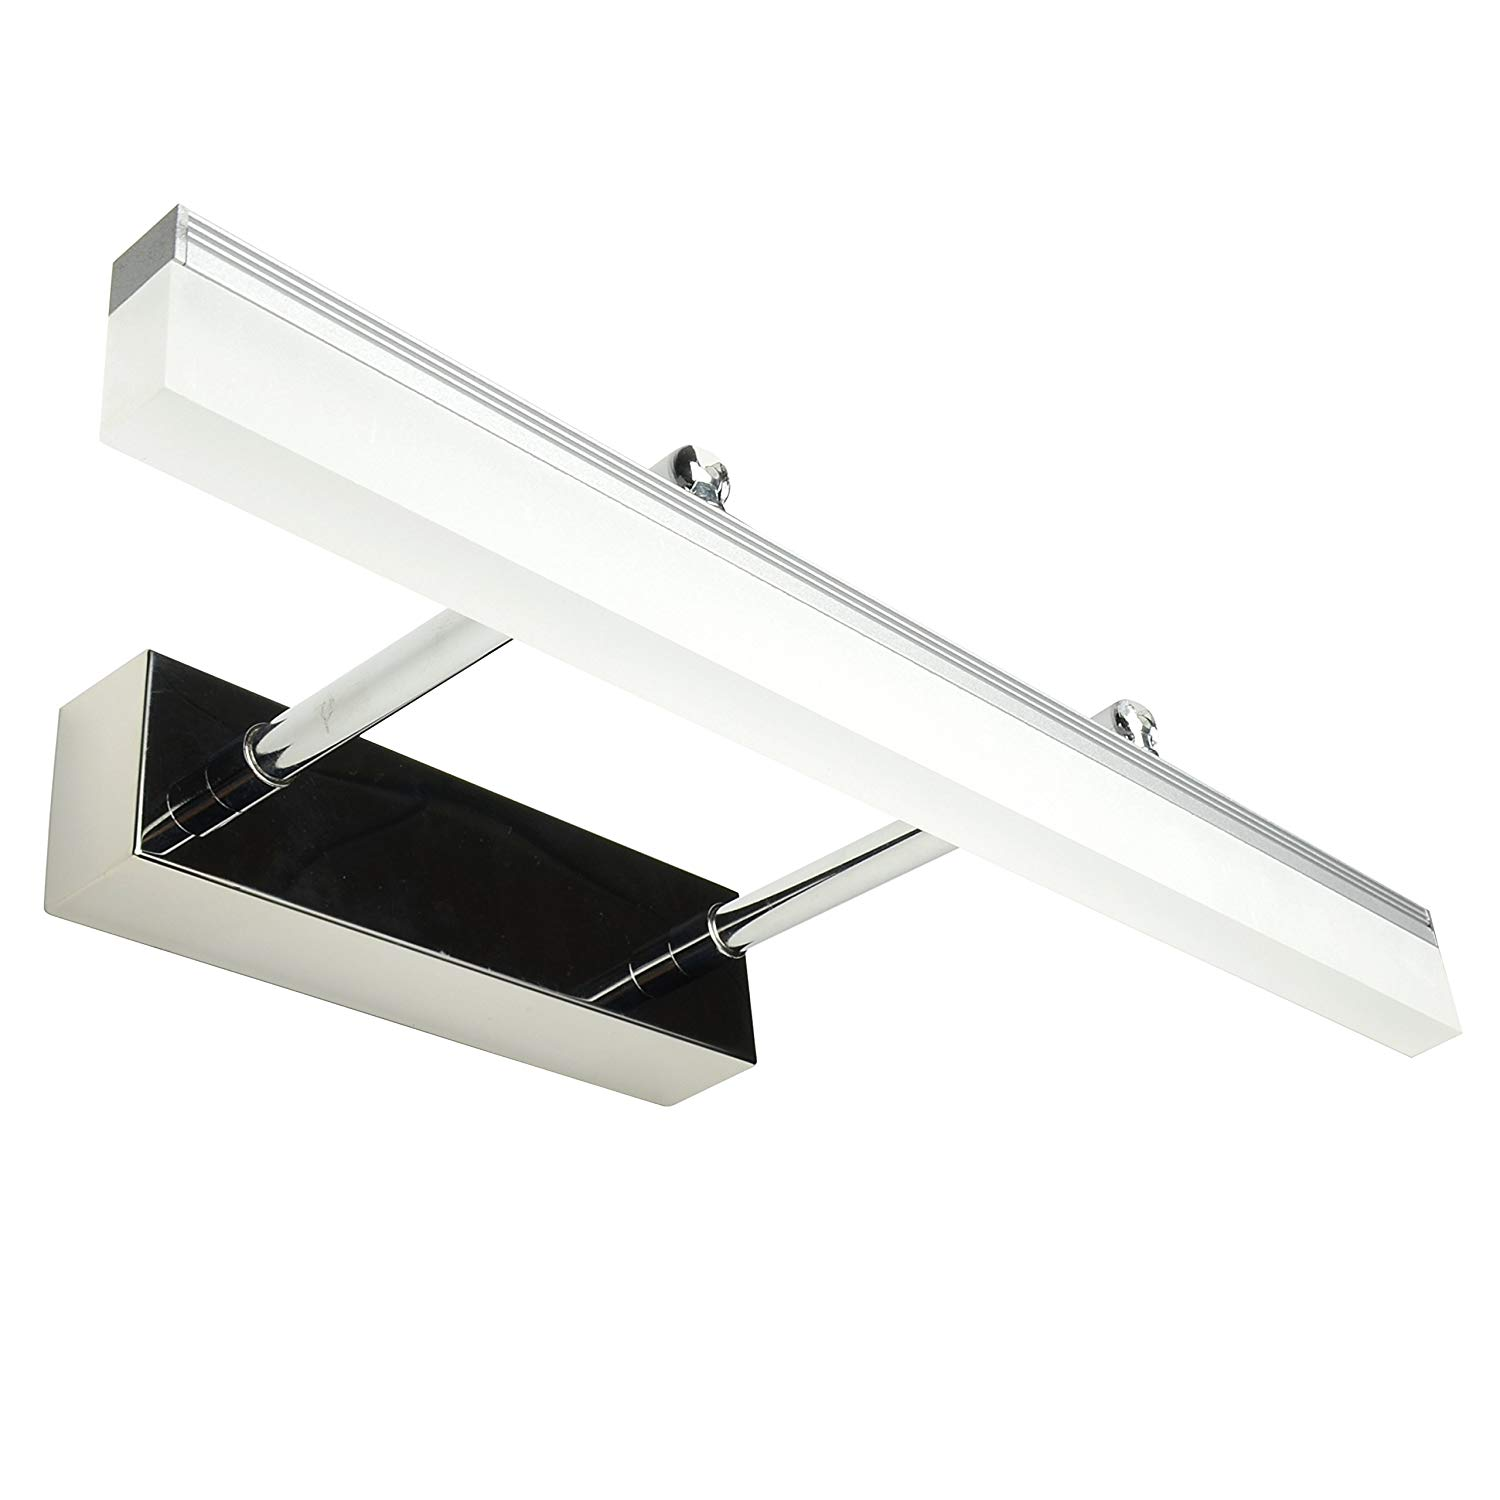 Etelux 9w Bath Vanity Light, Bathroom Mirror Lamp, Led Make-up Mirror Front Light, Sliver